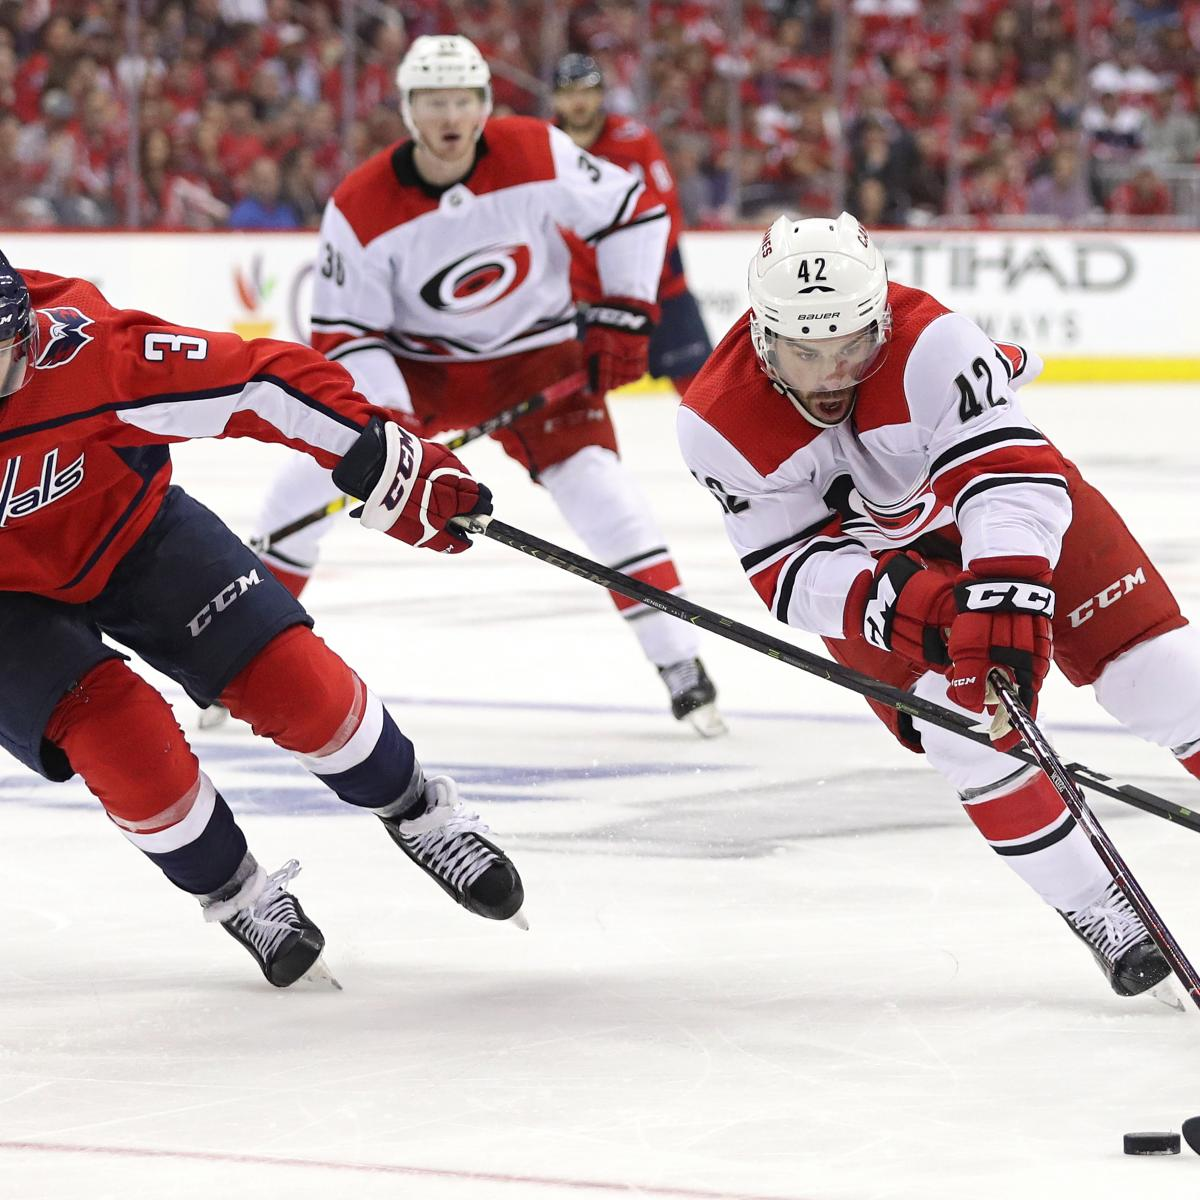 Latest News Updates: NHL Playoffs 2019: Updated TV Schedule, Odds, Standings